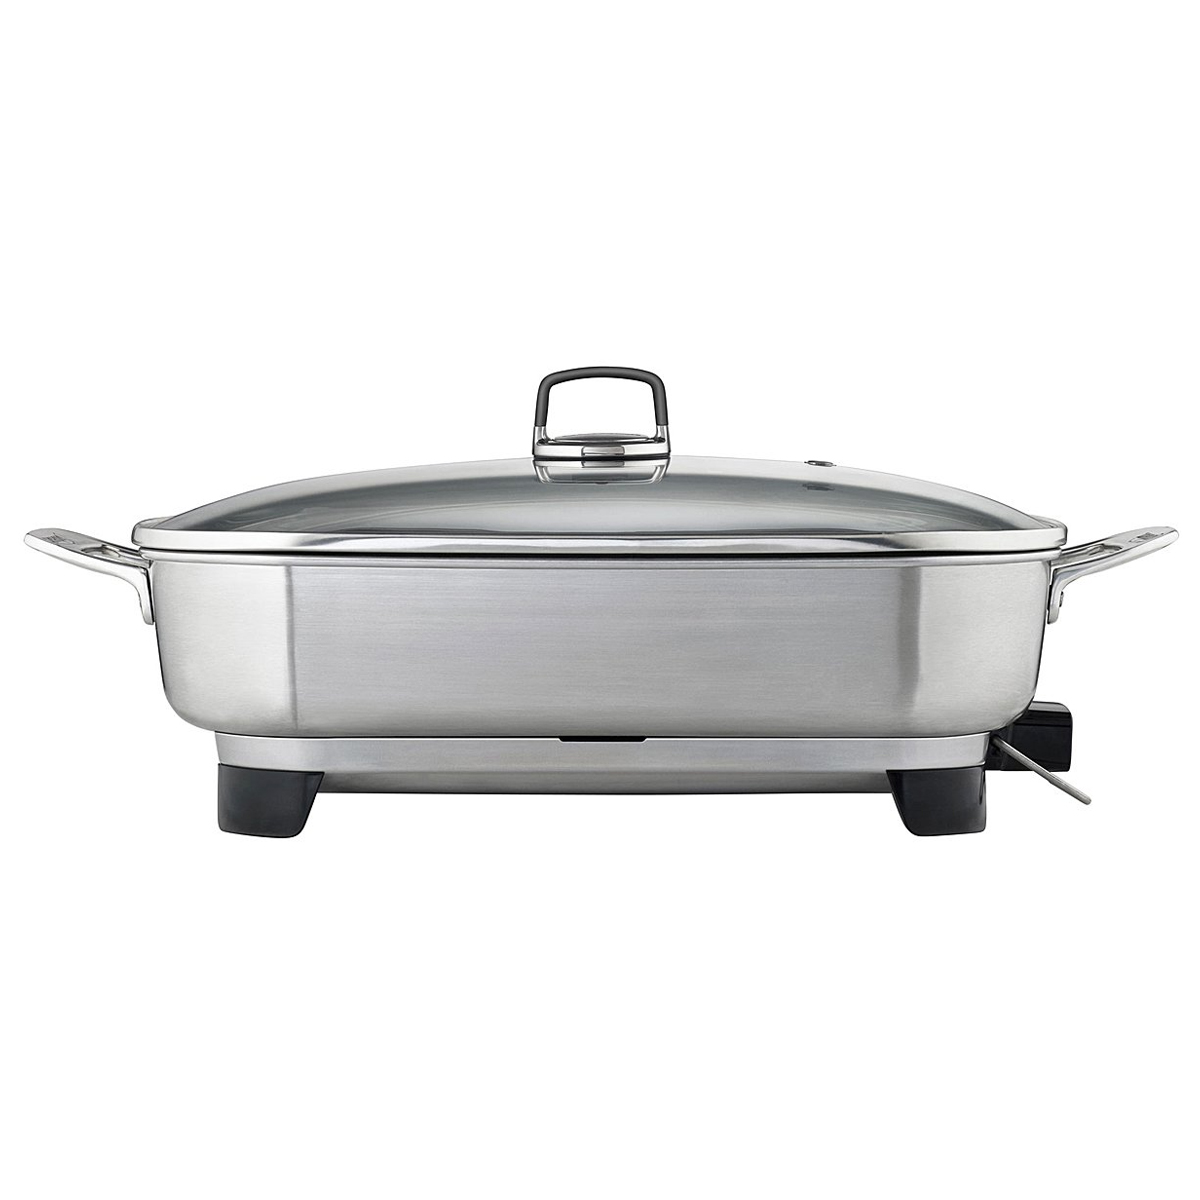 Sunbeam FP8950 Stainless Steel Banquet